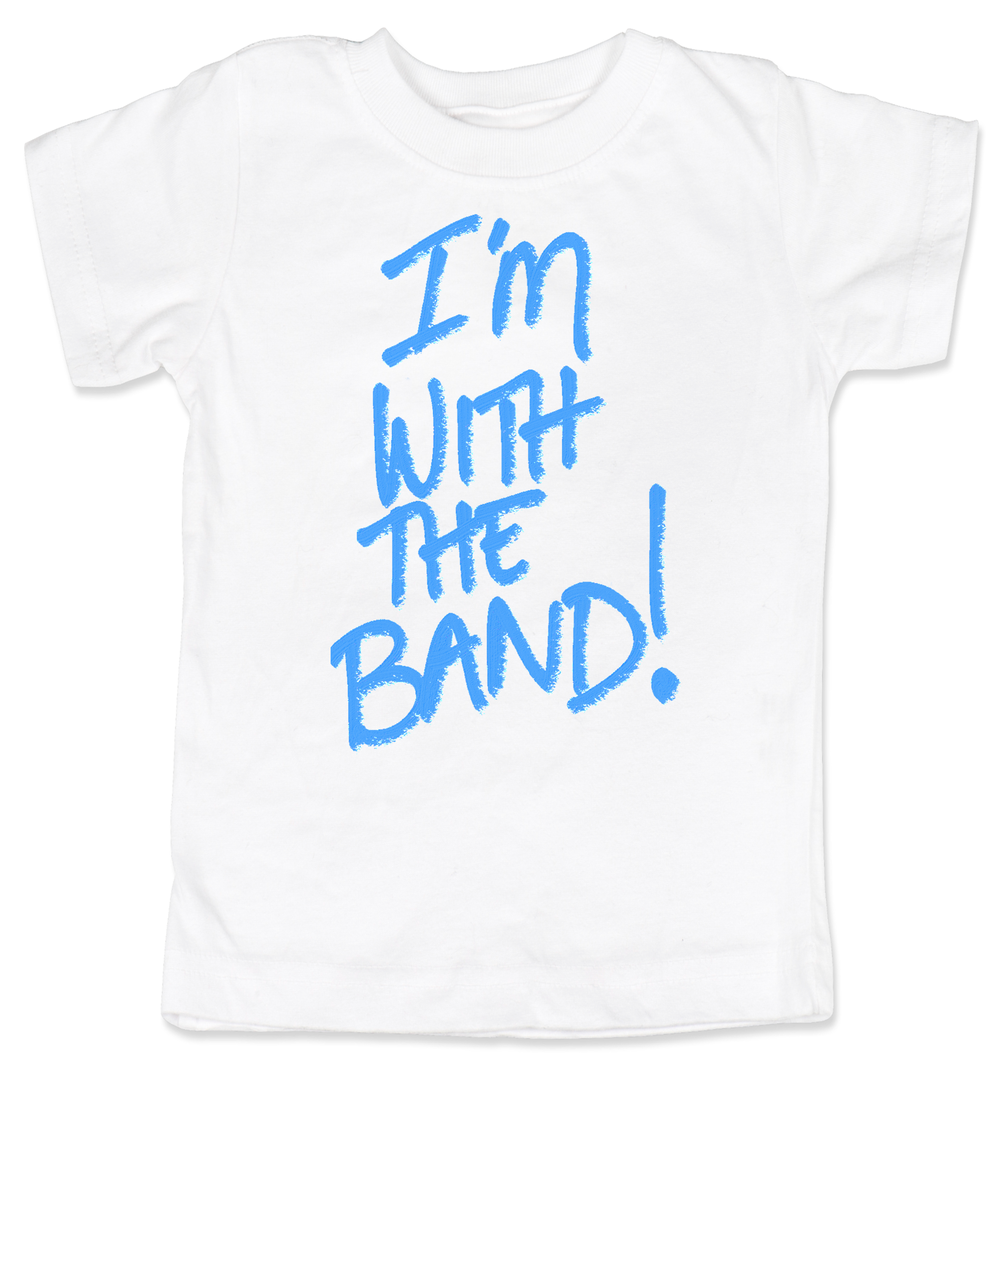 2f2117e2 I'm with the band toddler shirt, Littlest groupie, little groupie toddler  shirt